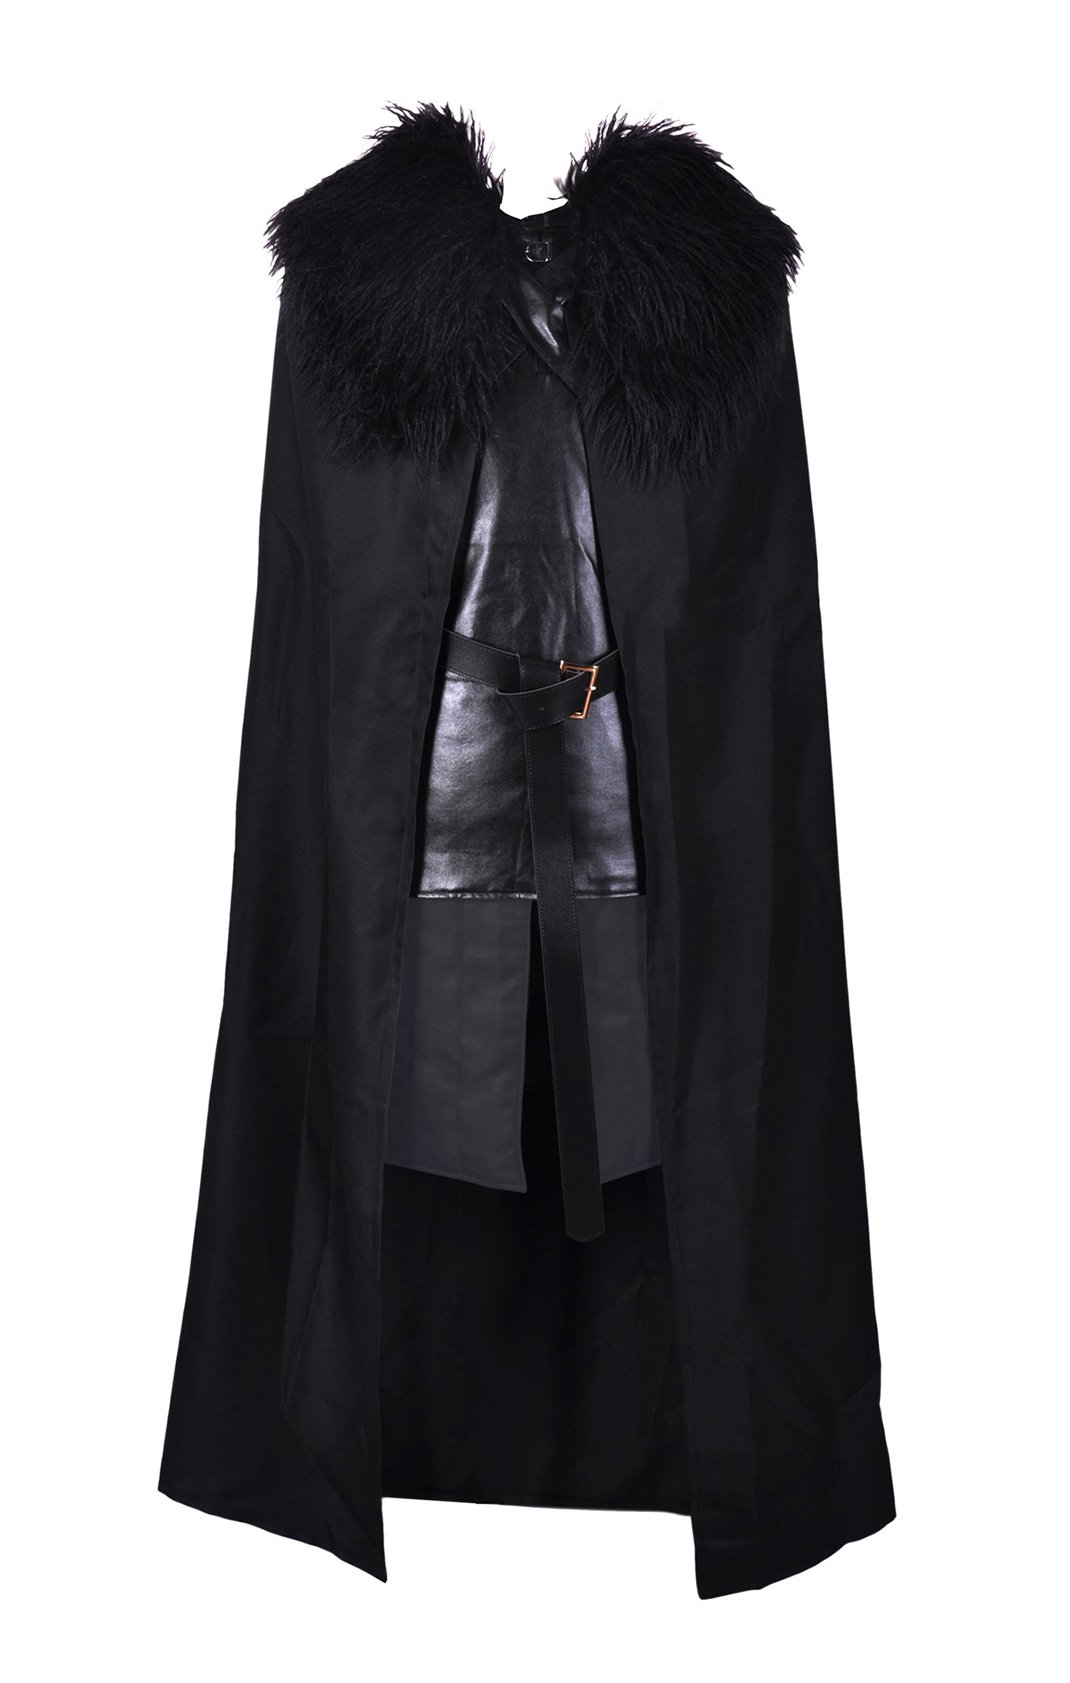 Crystal Dew Jon Snow Knights Watch Cosplay Costume for Man and Child